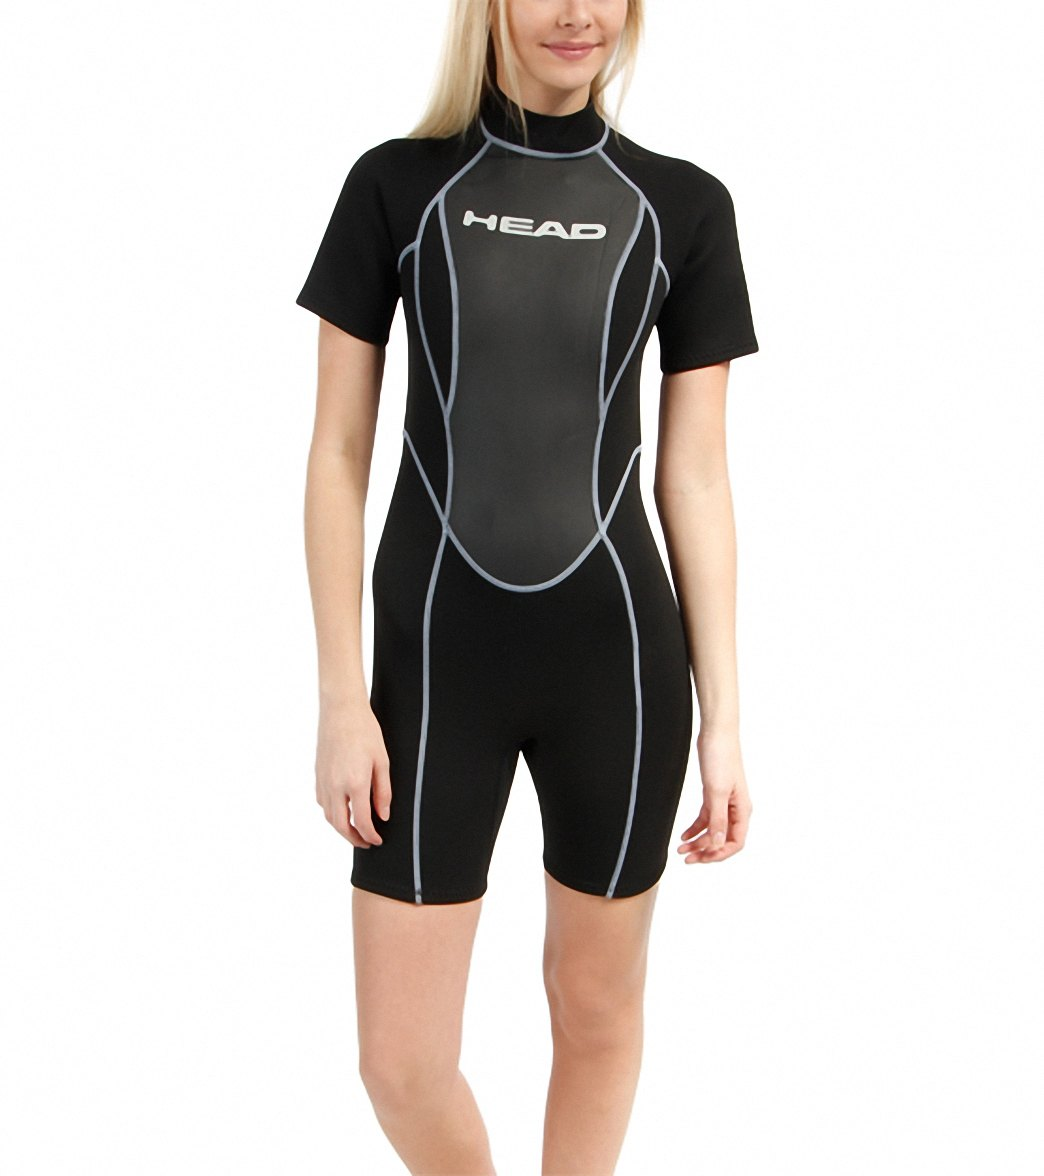 HEAD Wave 2.5 Women s Shorty Wetsuit at SwimOutlet.com - Free Shipping 7f51ecb64